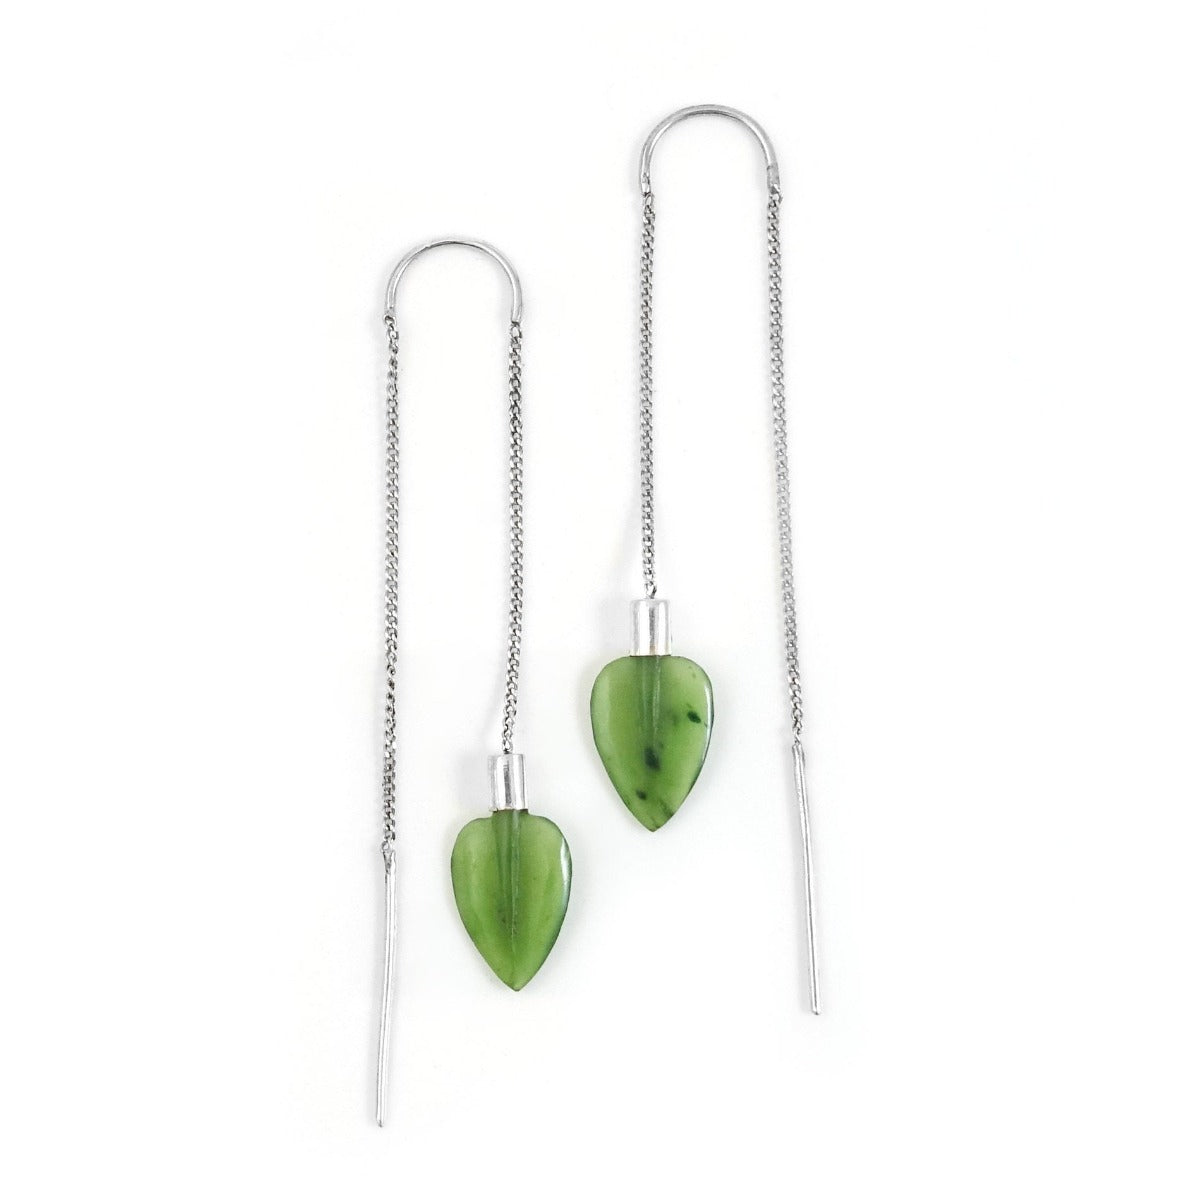 jade kiwi kaikoura gifts earrings pounamu